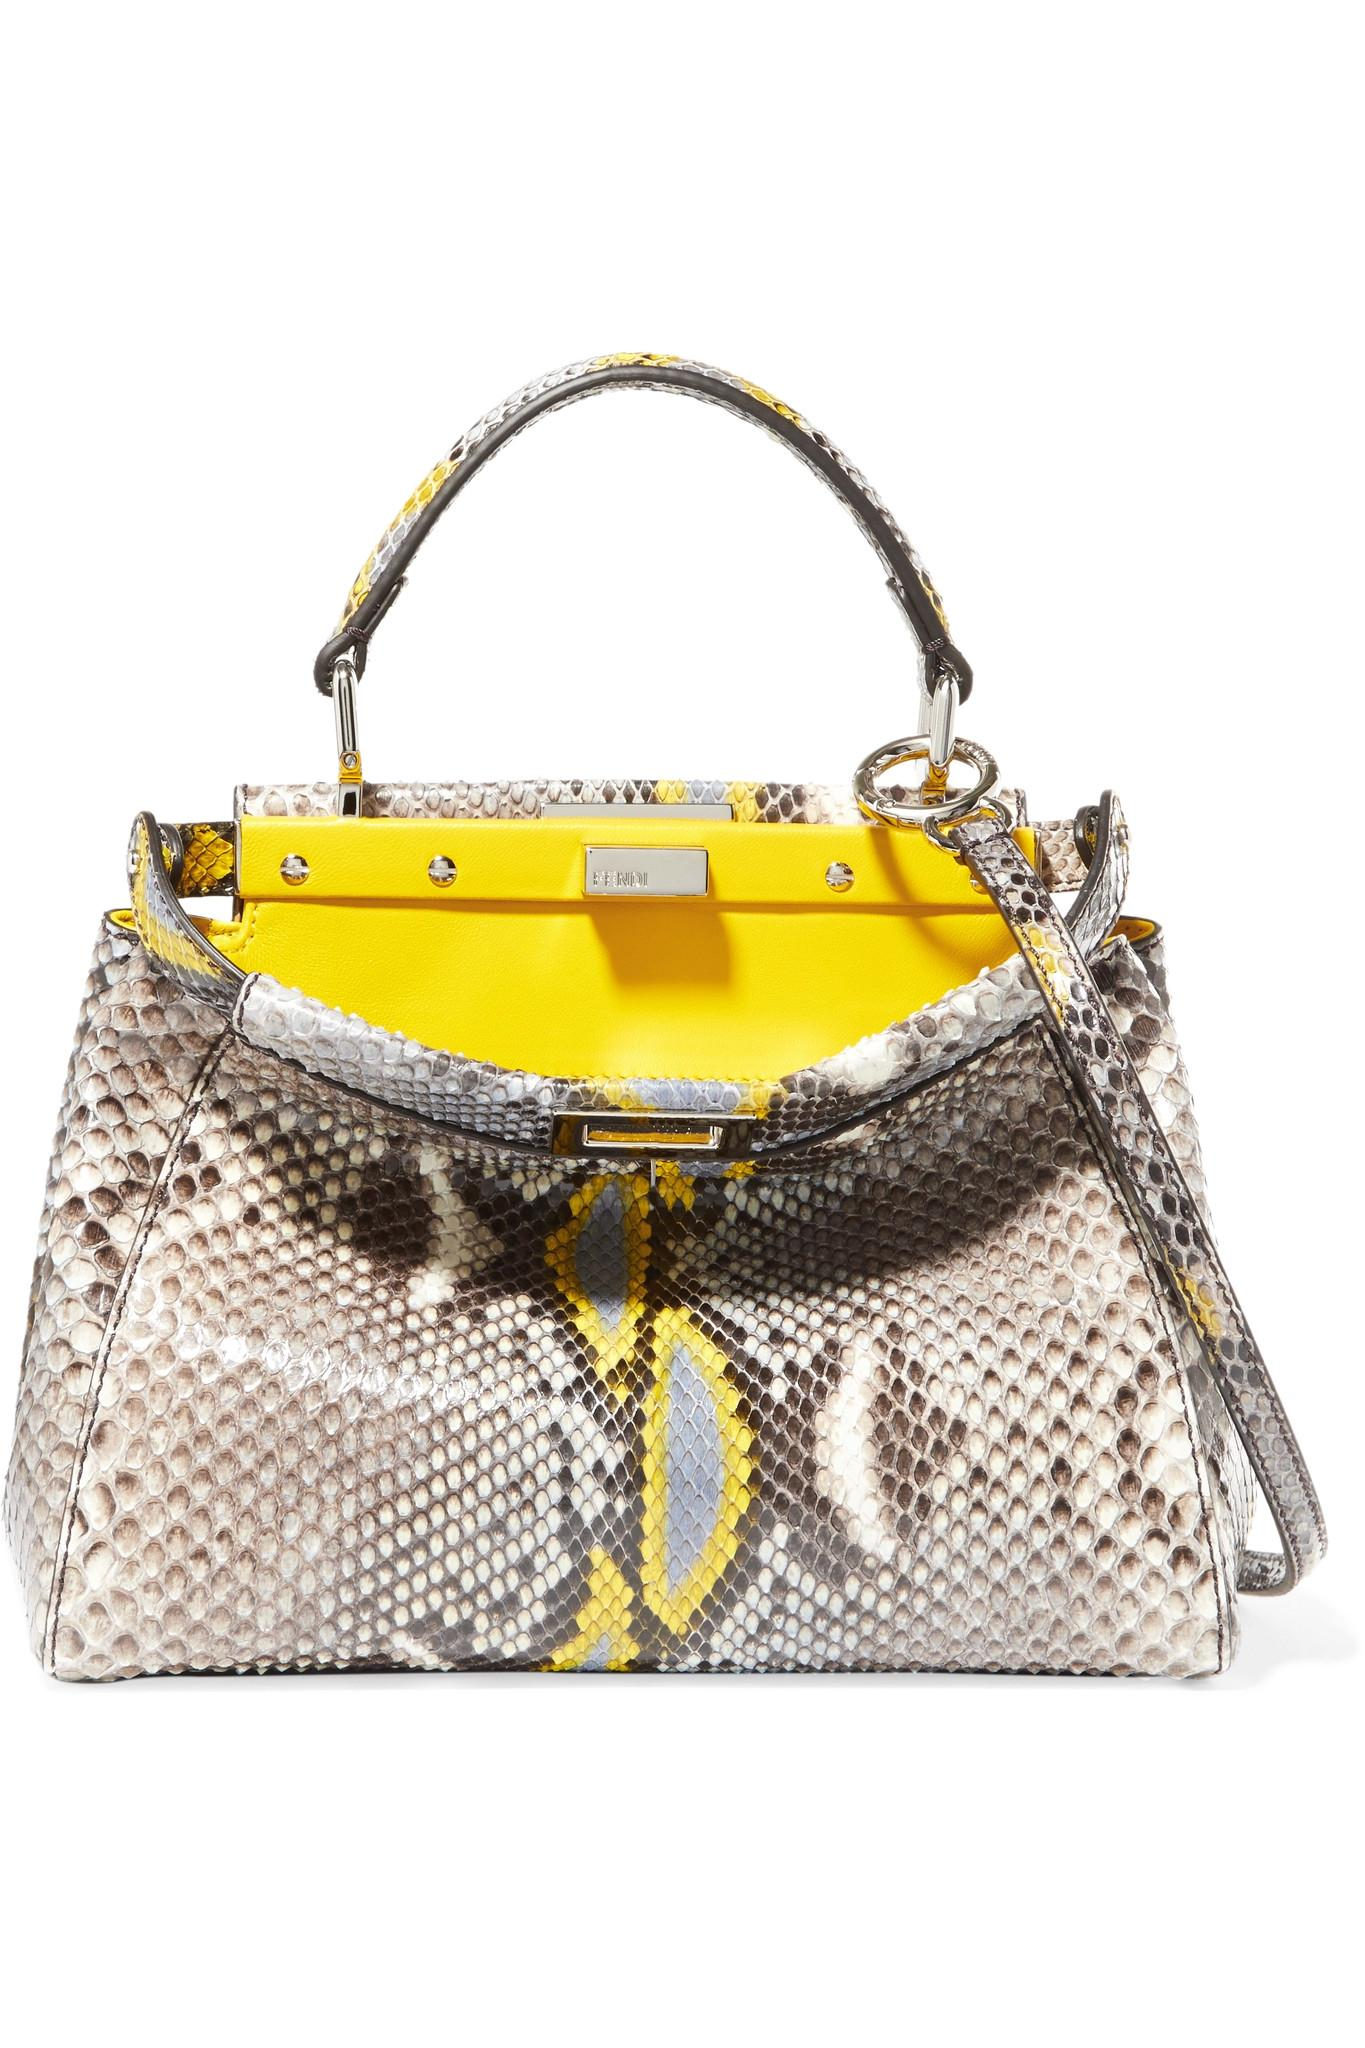 Lyst - Fendi Peekaboo Mini Python Shoulder Bag in Yellow 28fd91207f355